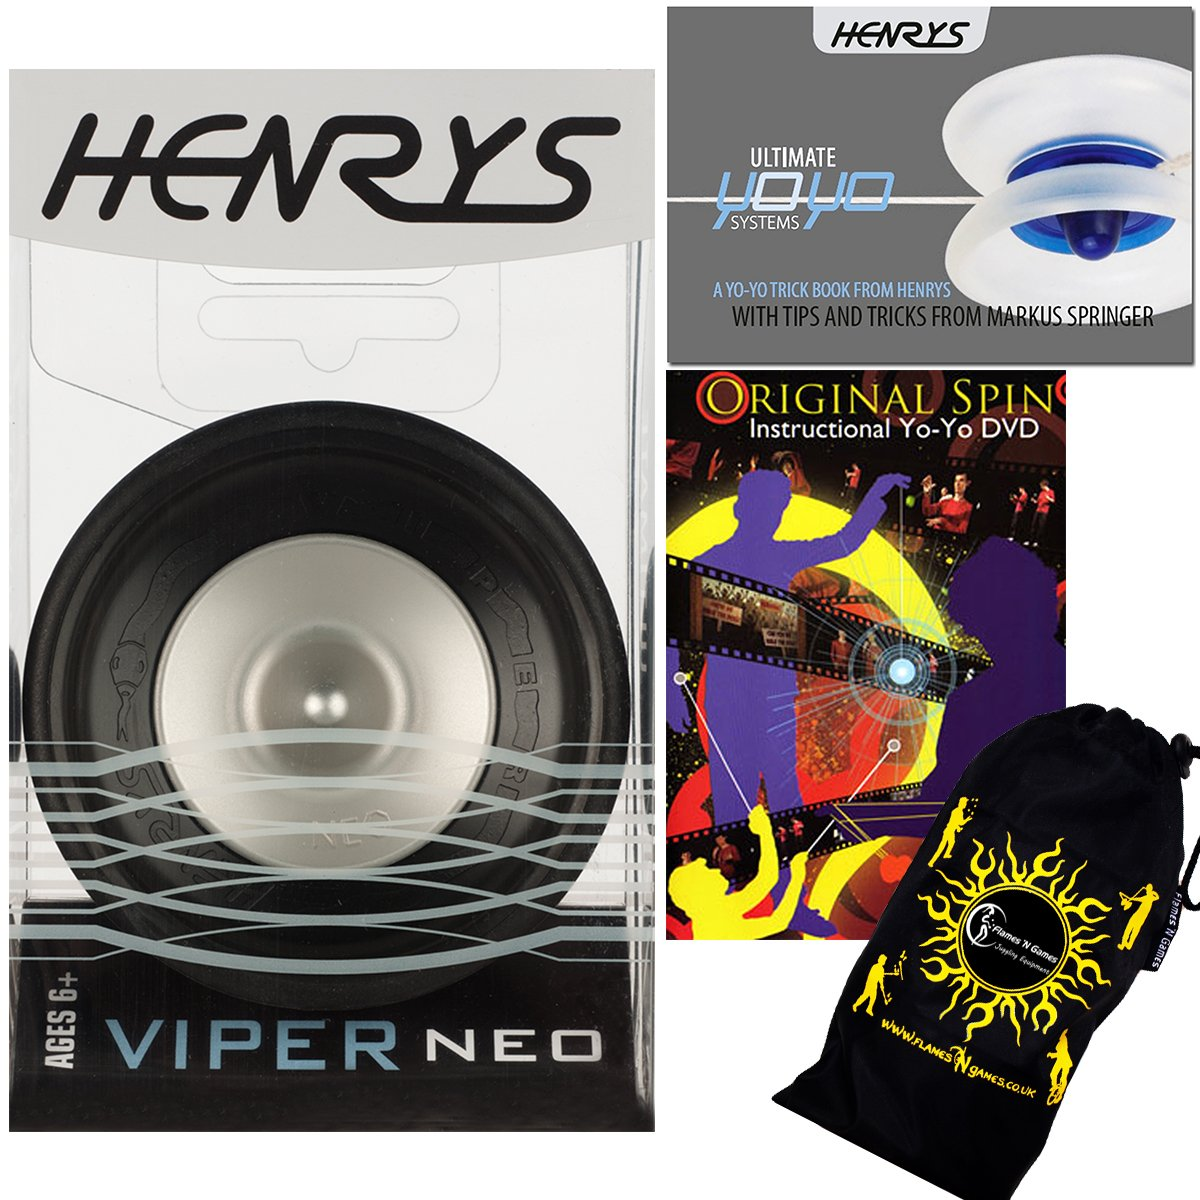 Henrys VIPER NEO Pro YoYo (Black) Professional Off String (1A, 4A) Bearing YoYo +Instructional Booklet of Tricks + 75 Yo-Yo Tricks DVD! & Travel Bag! Top Of The Range YoYo! Pro YoYos For Kids and Adults!